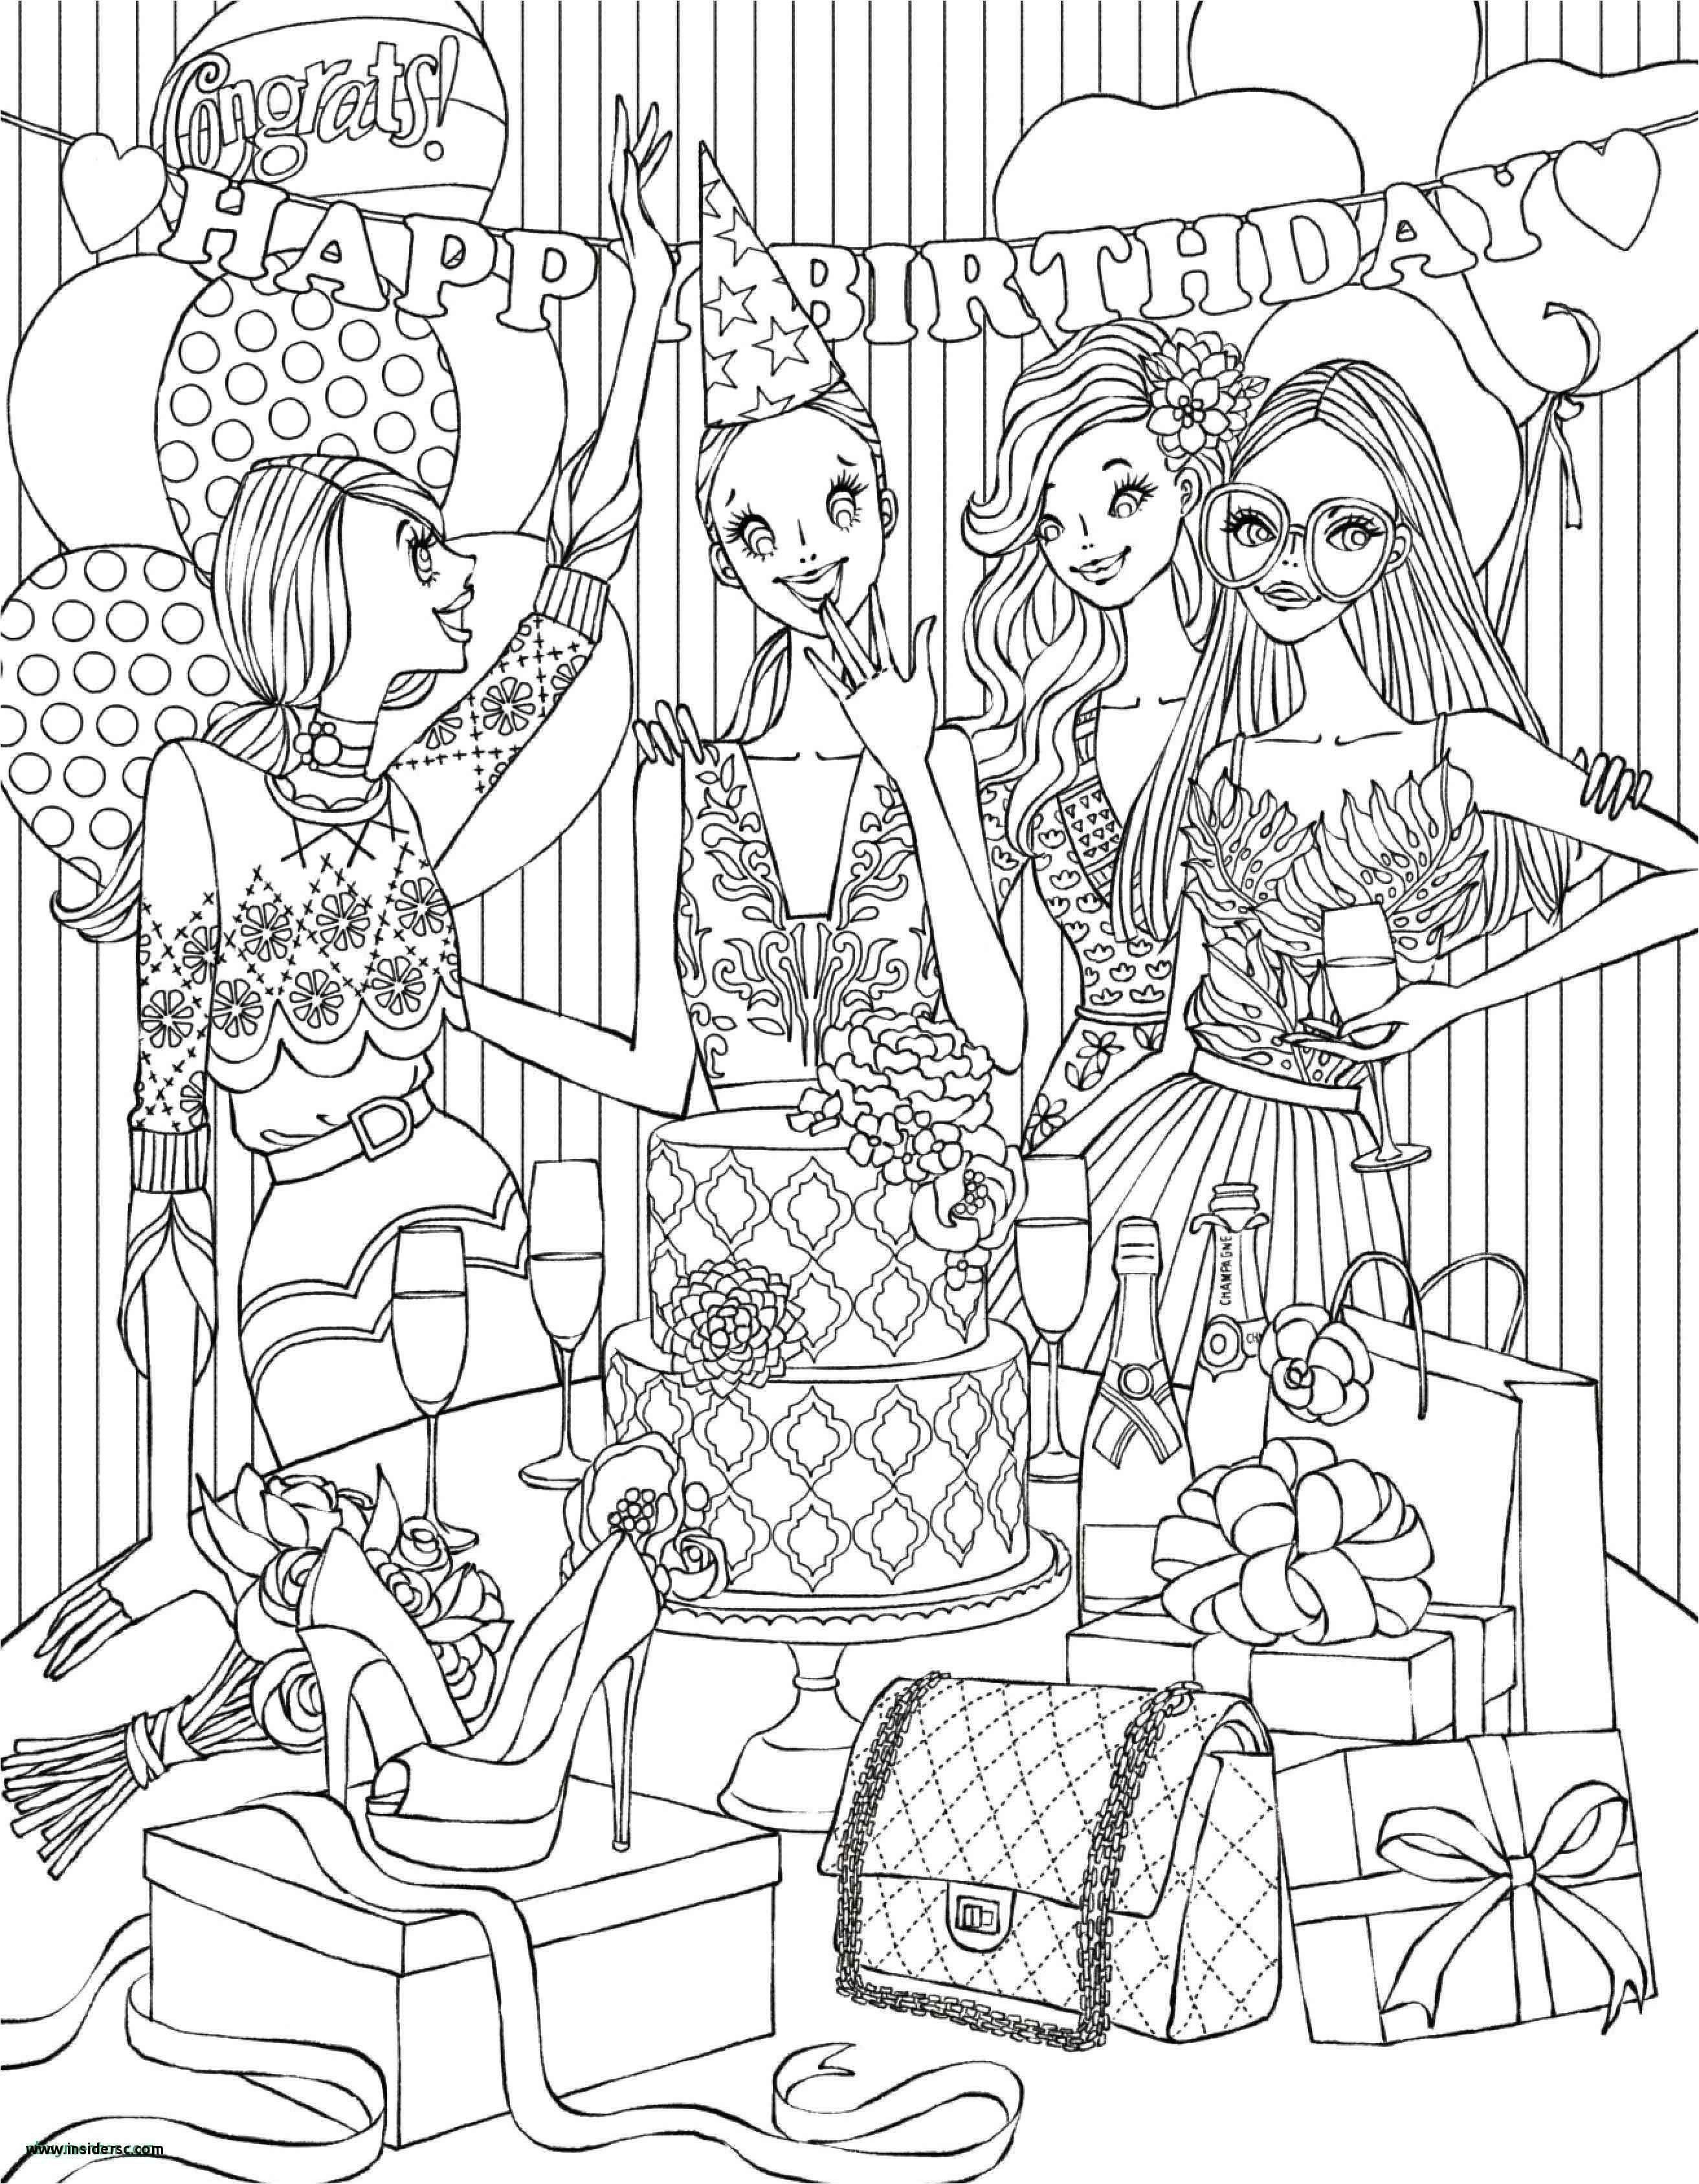 Elf On The Shelf Coloring Pages Fresh Christmas Elf